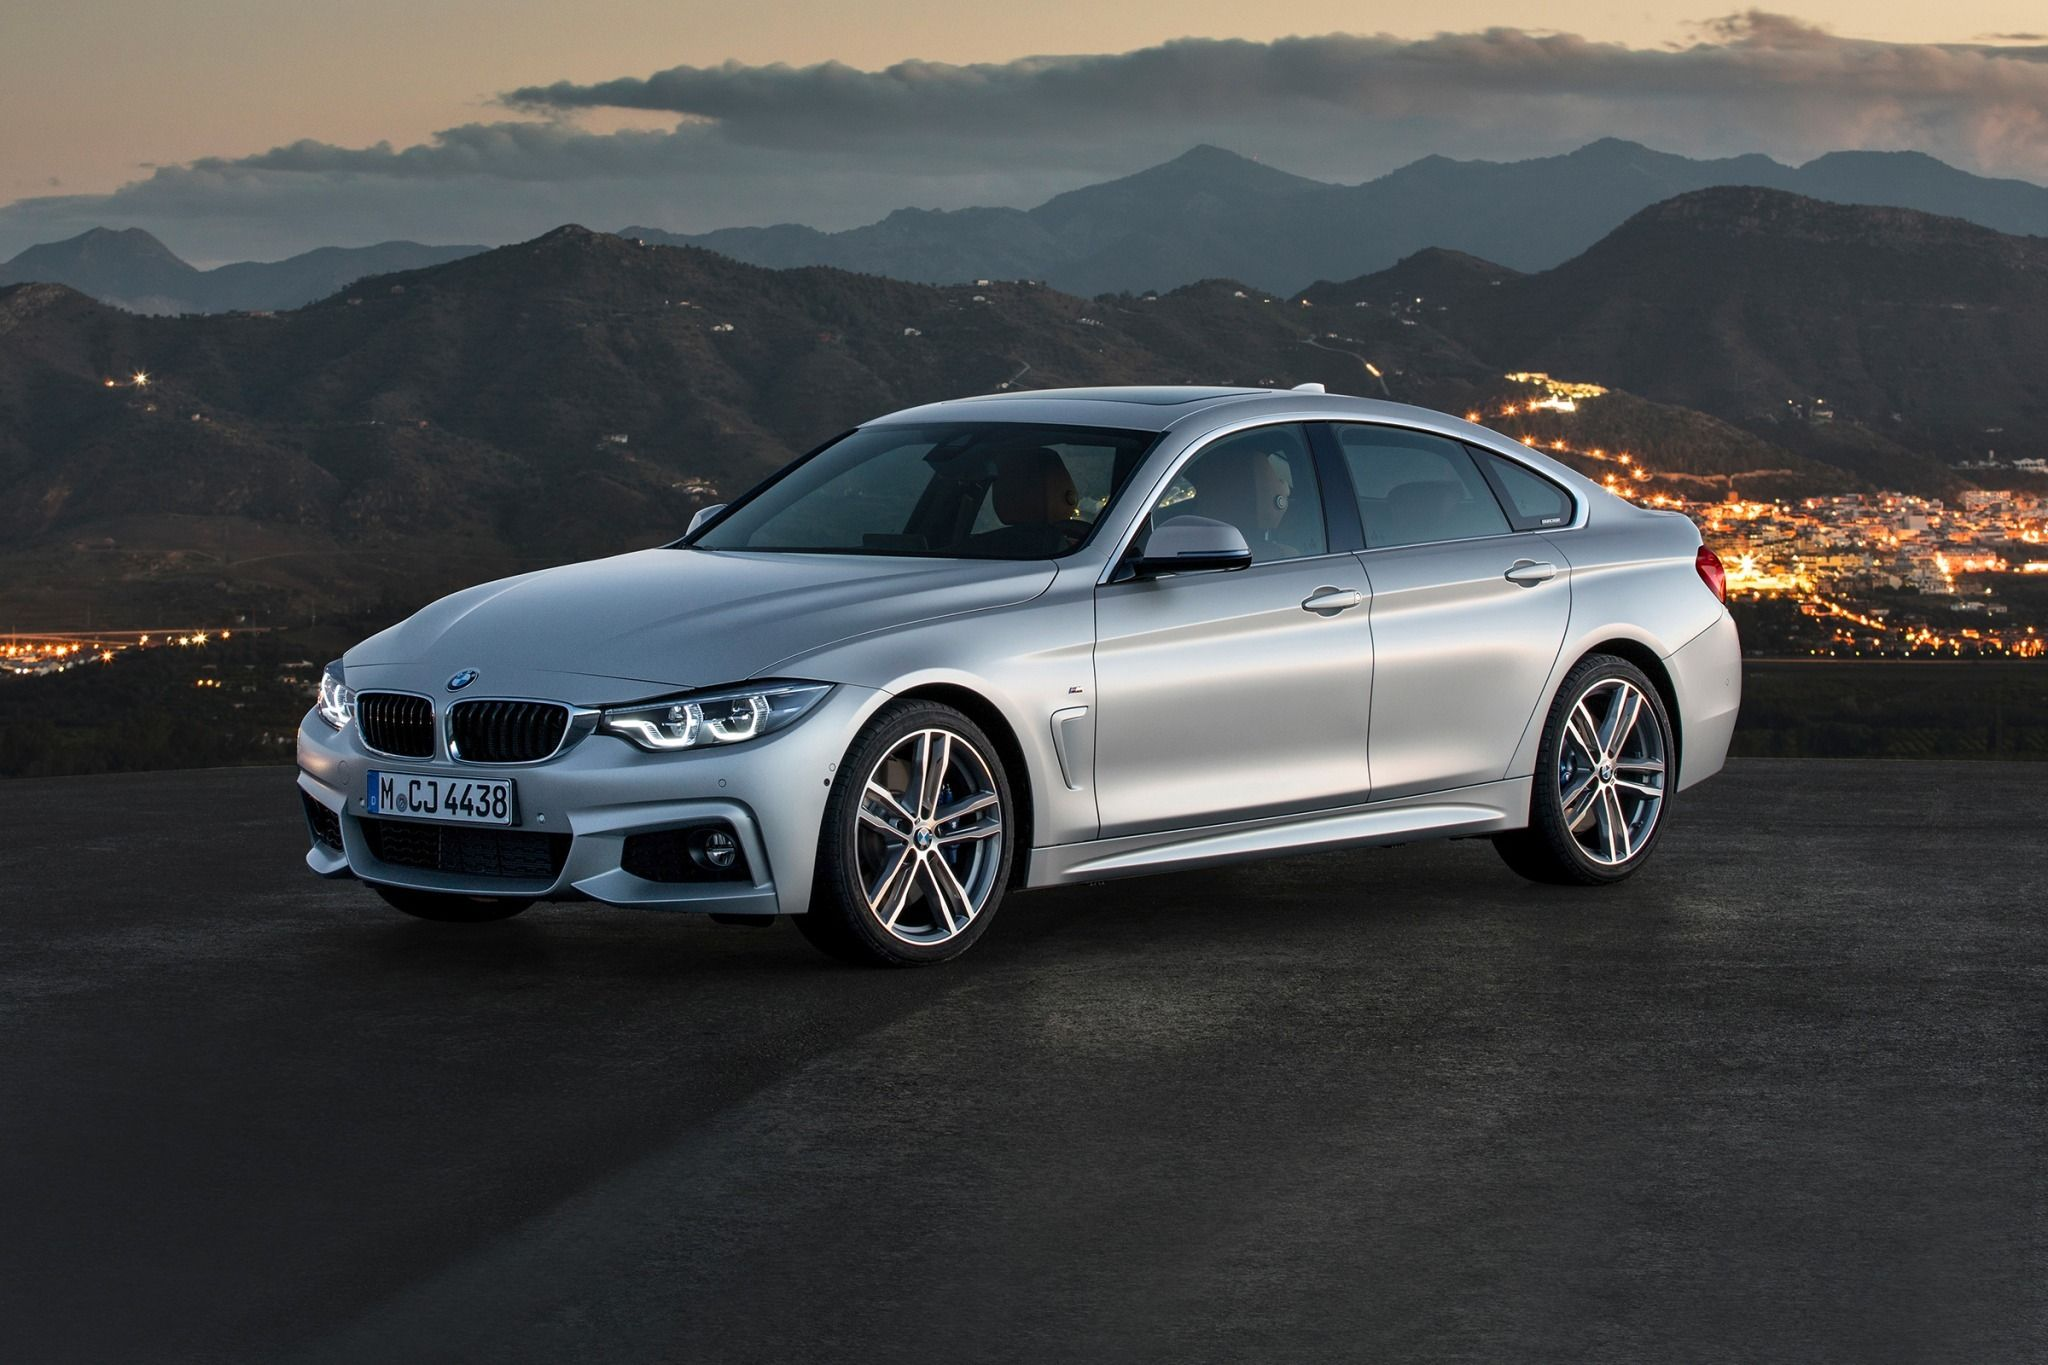 2018 BMW 4-Series Gran Coupe VIN Number Search - AutoDetective